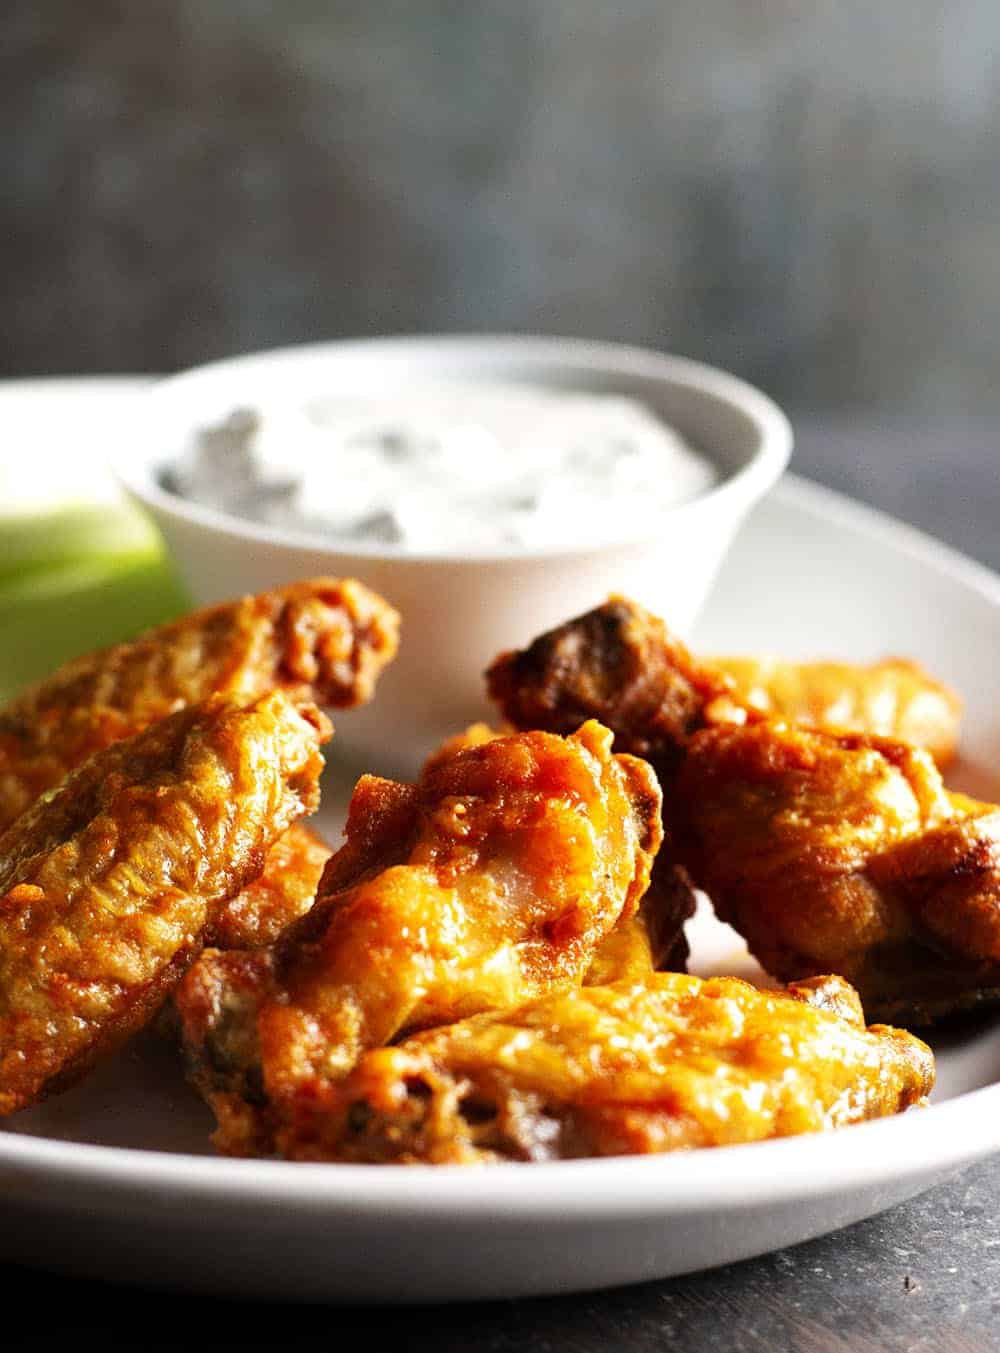 Crispy Baked Buffalo Wings served with blue cheese dip